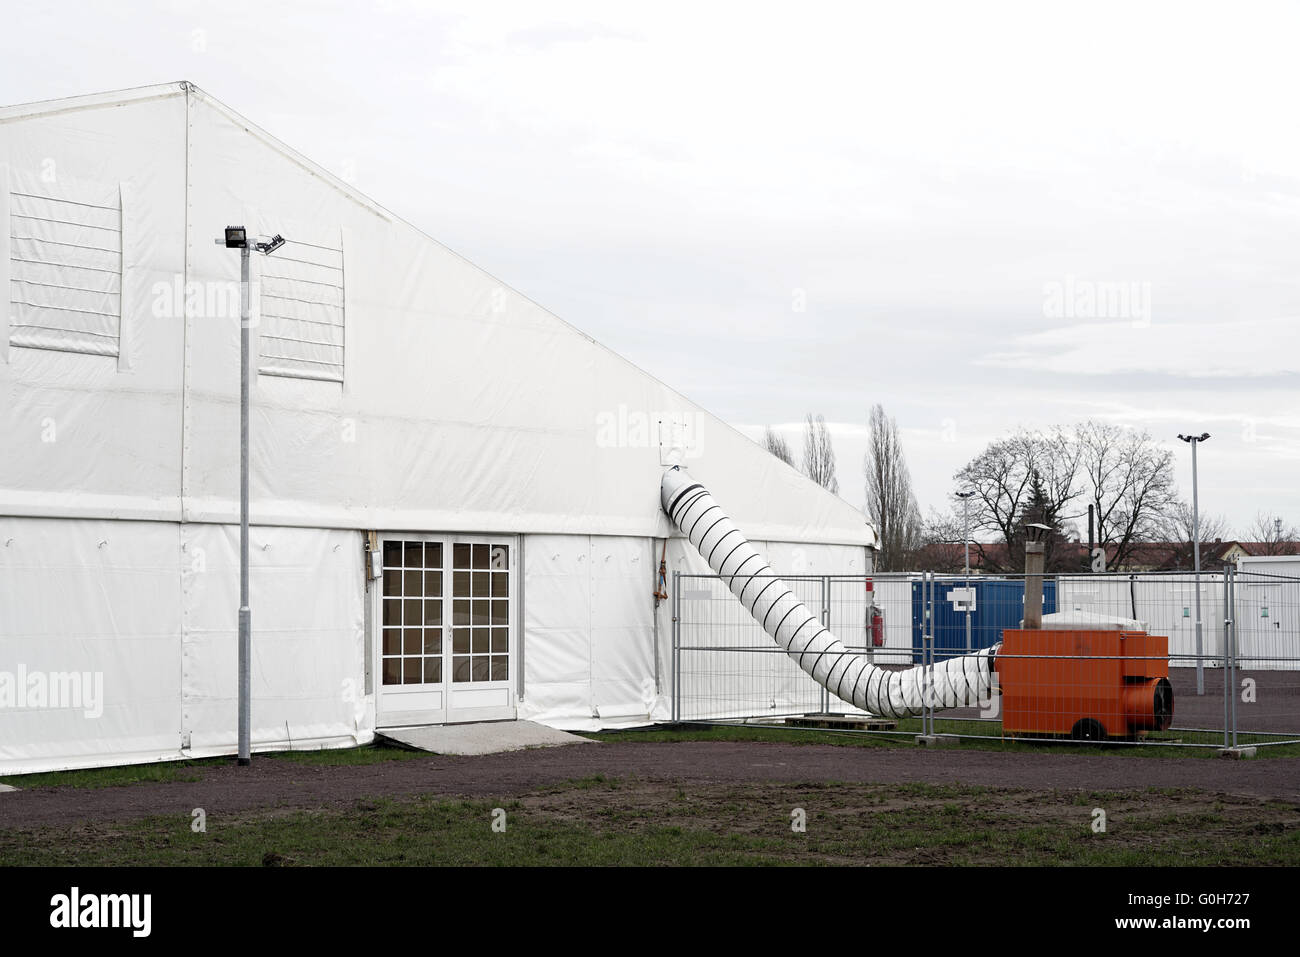 makeshift refugee camp in tents for refugees in Magdeburg in Germany - Stock Image